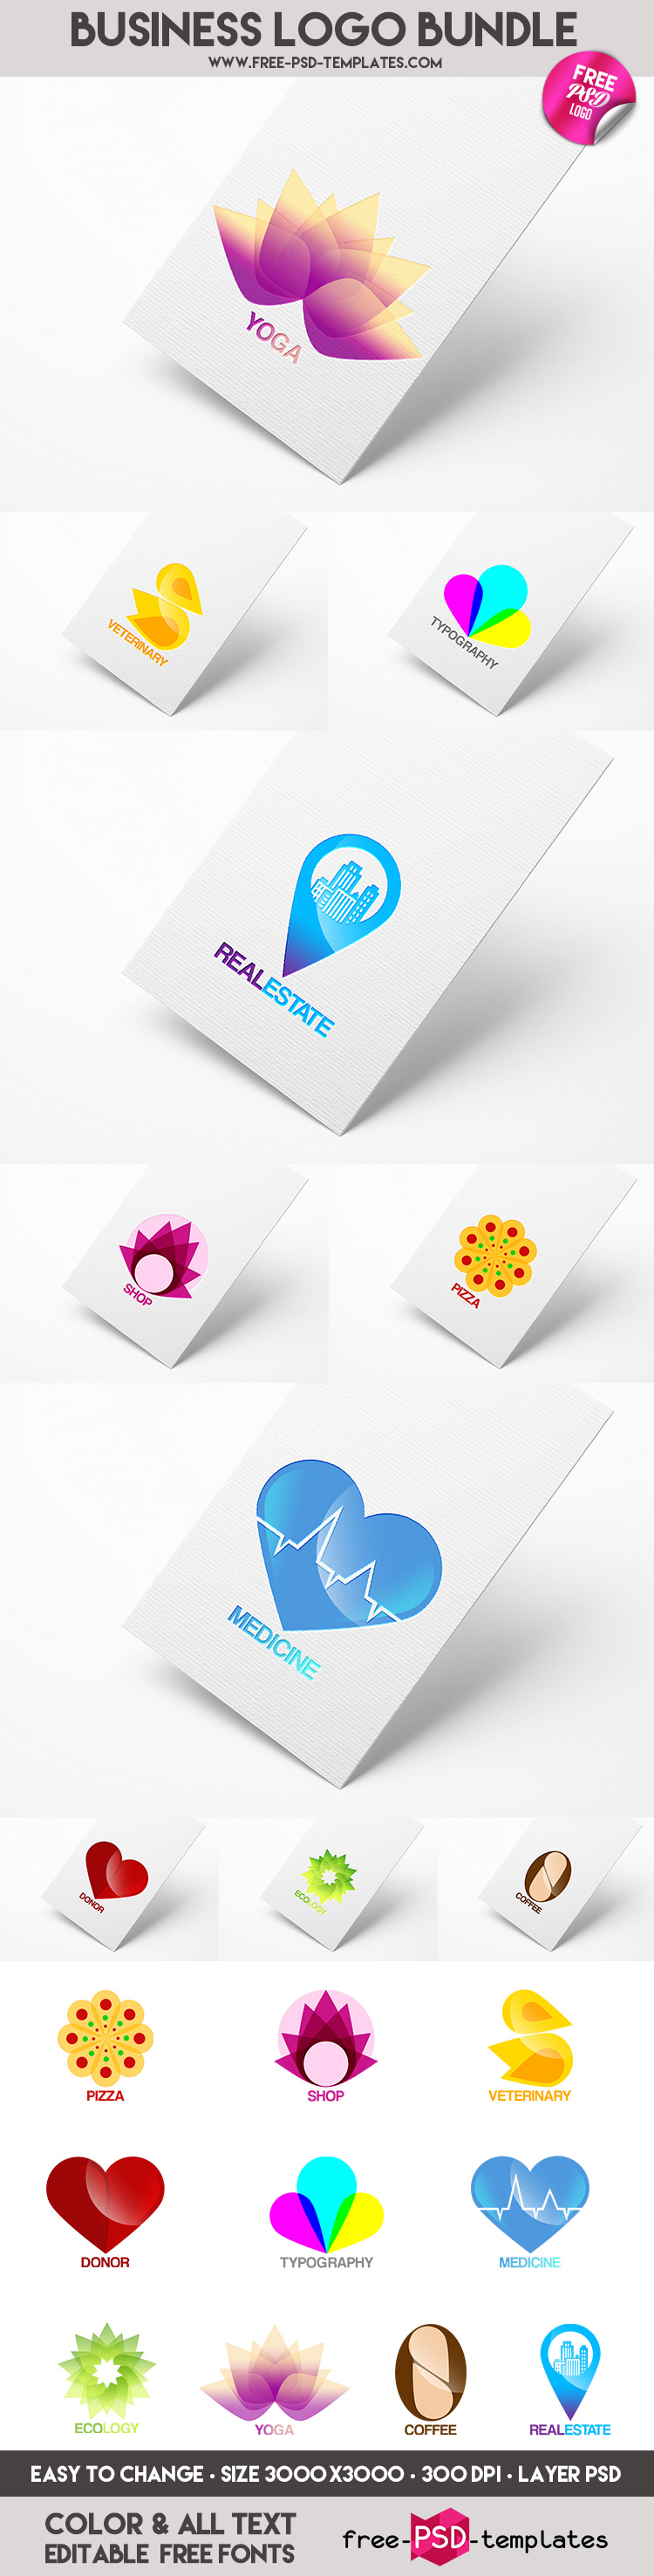 10 business logo bundle in psd psd templates it was created exclusively for our website the template is fully layered and well organized you are to this psd template and modify it the